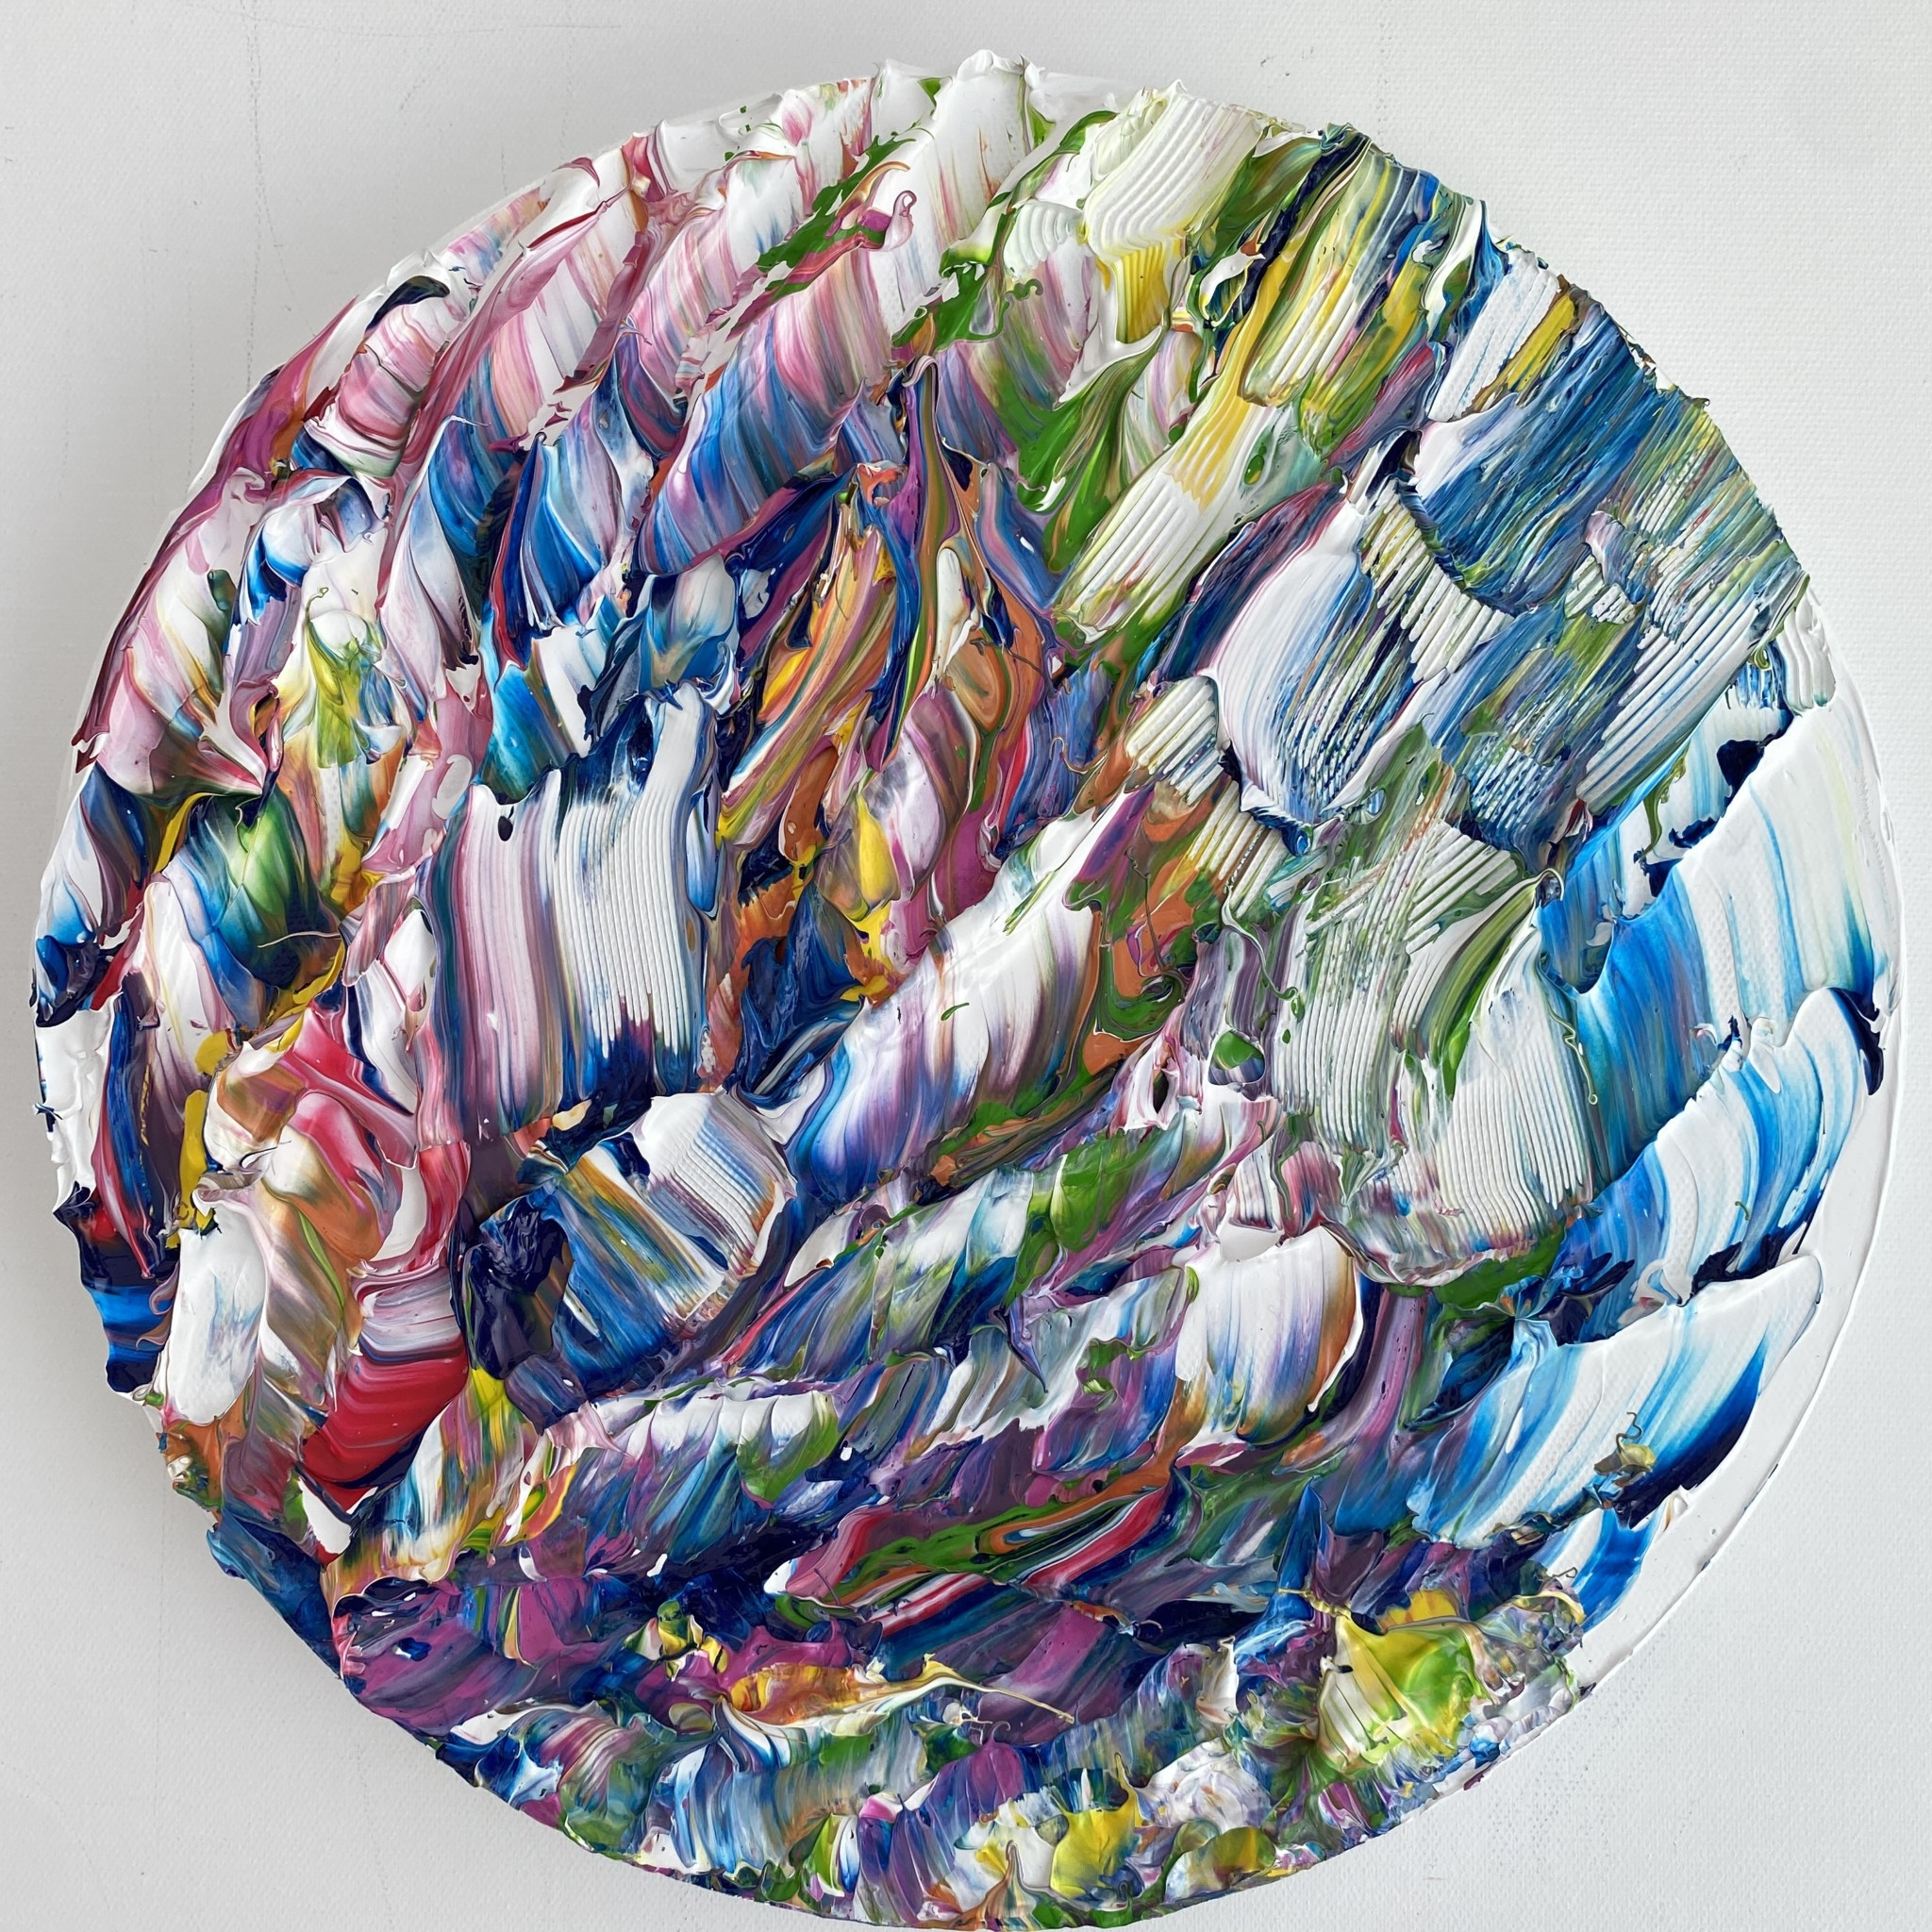 kaleidoscopic round sculpted painting on canvas by emily duchscherer Kirk somerset uk